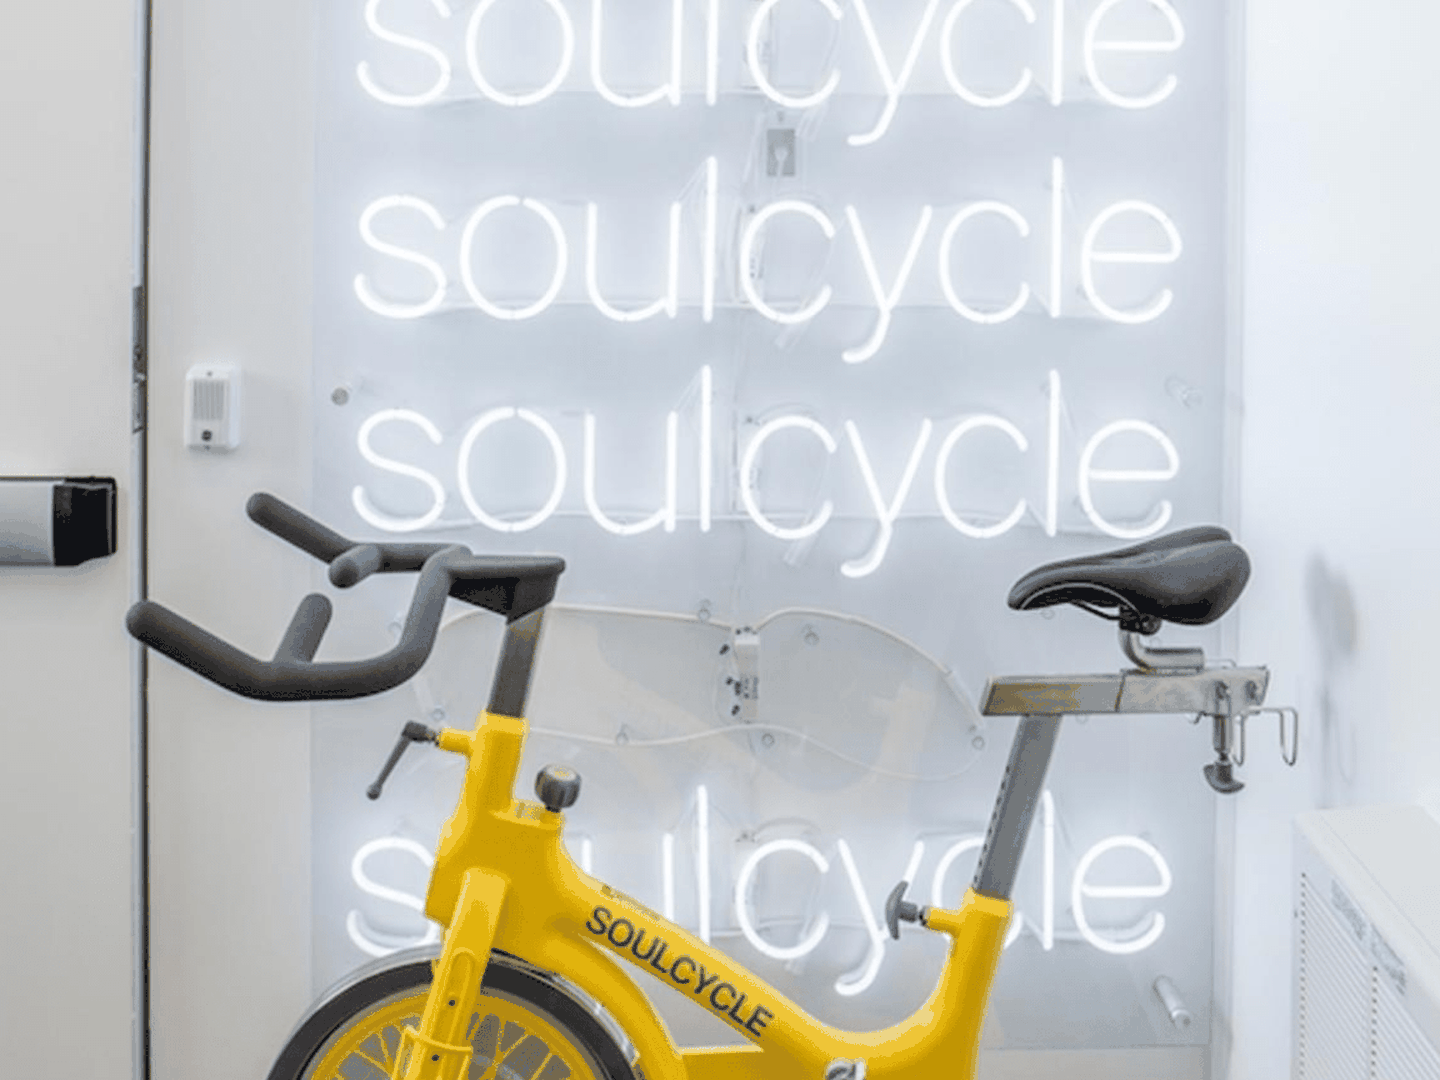 SoulCycle case study feature image